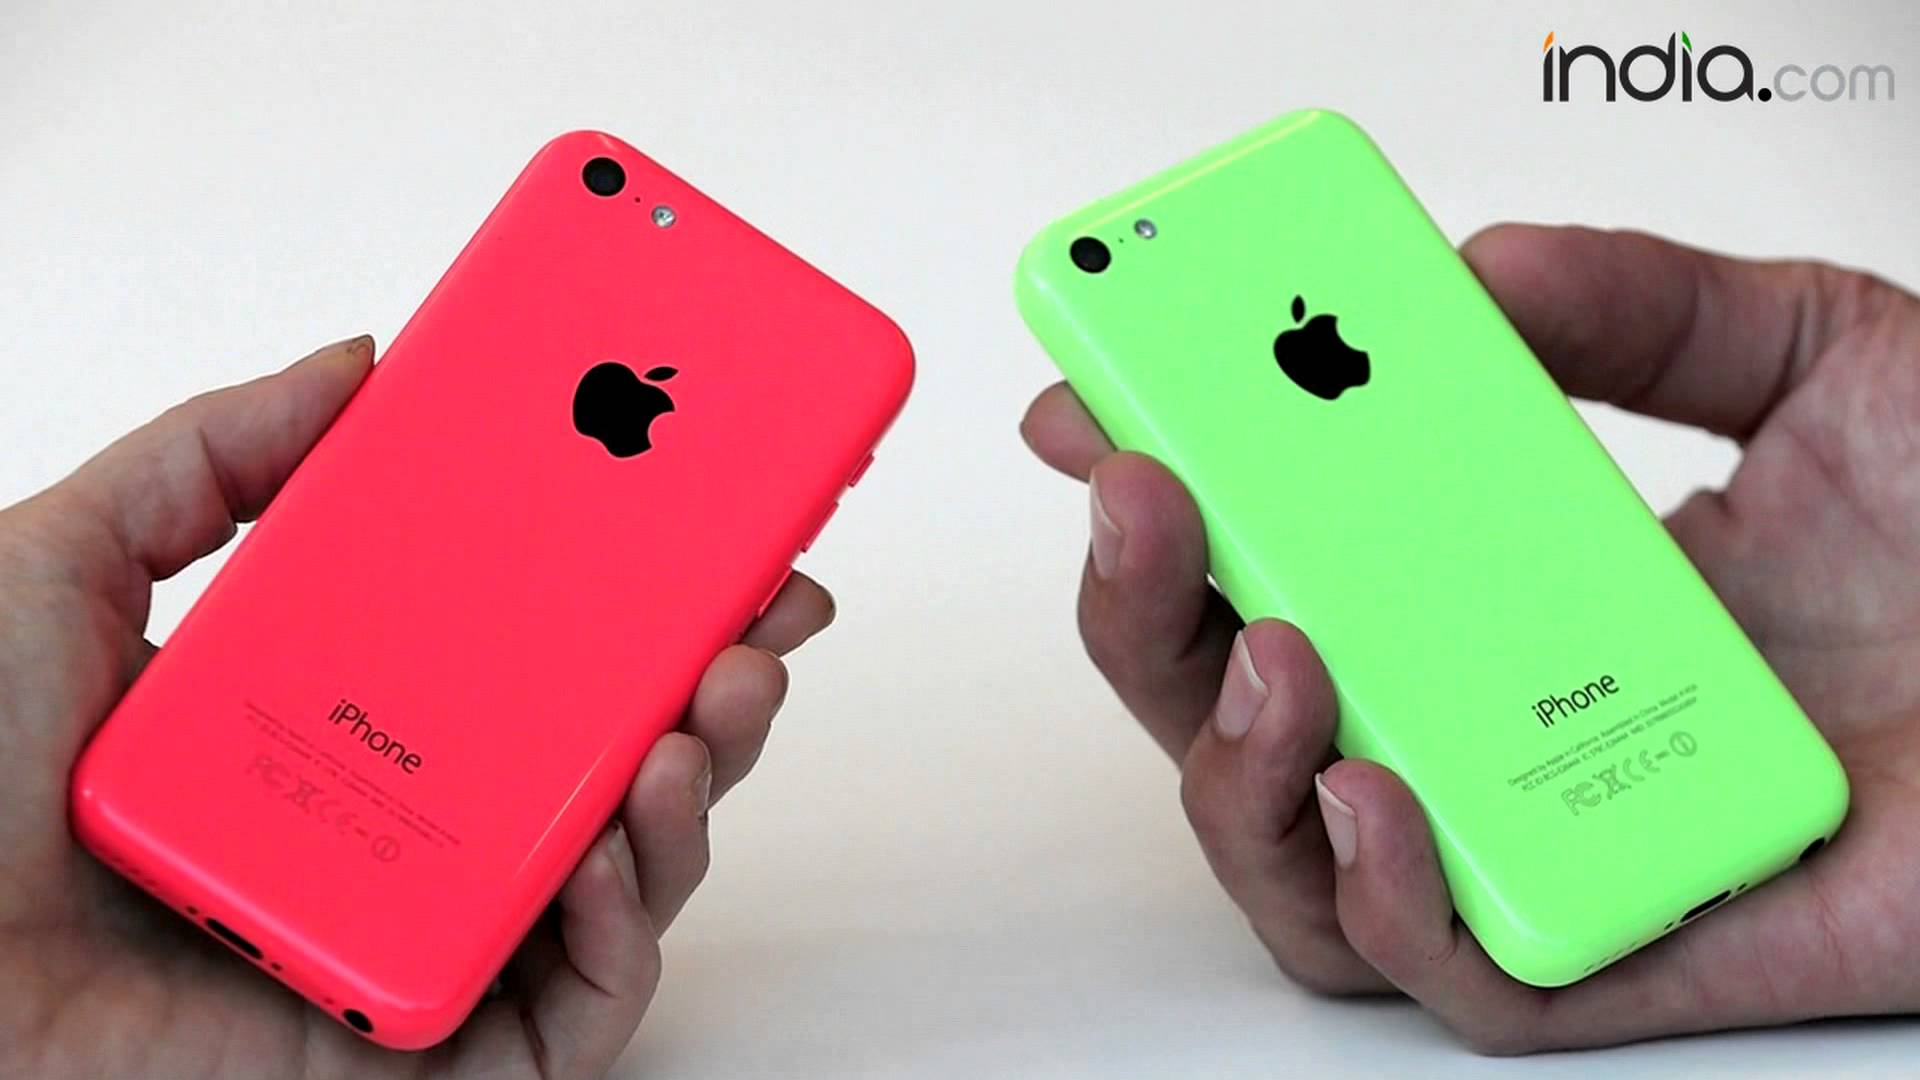 Apple iPhone 5C 8GB launching in India - YouTube